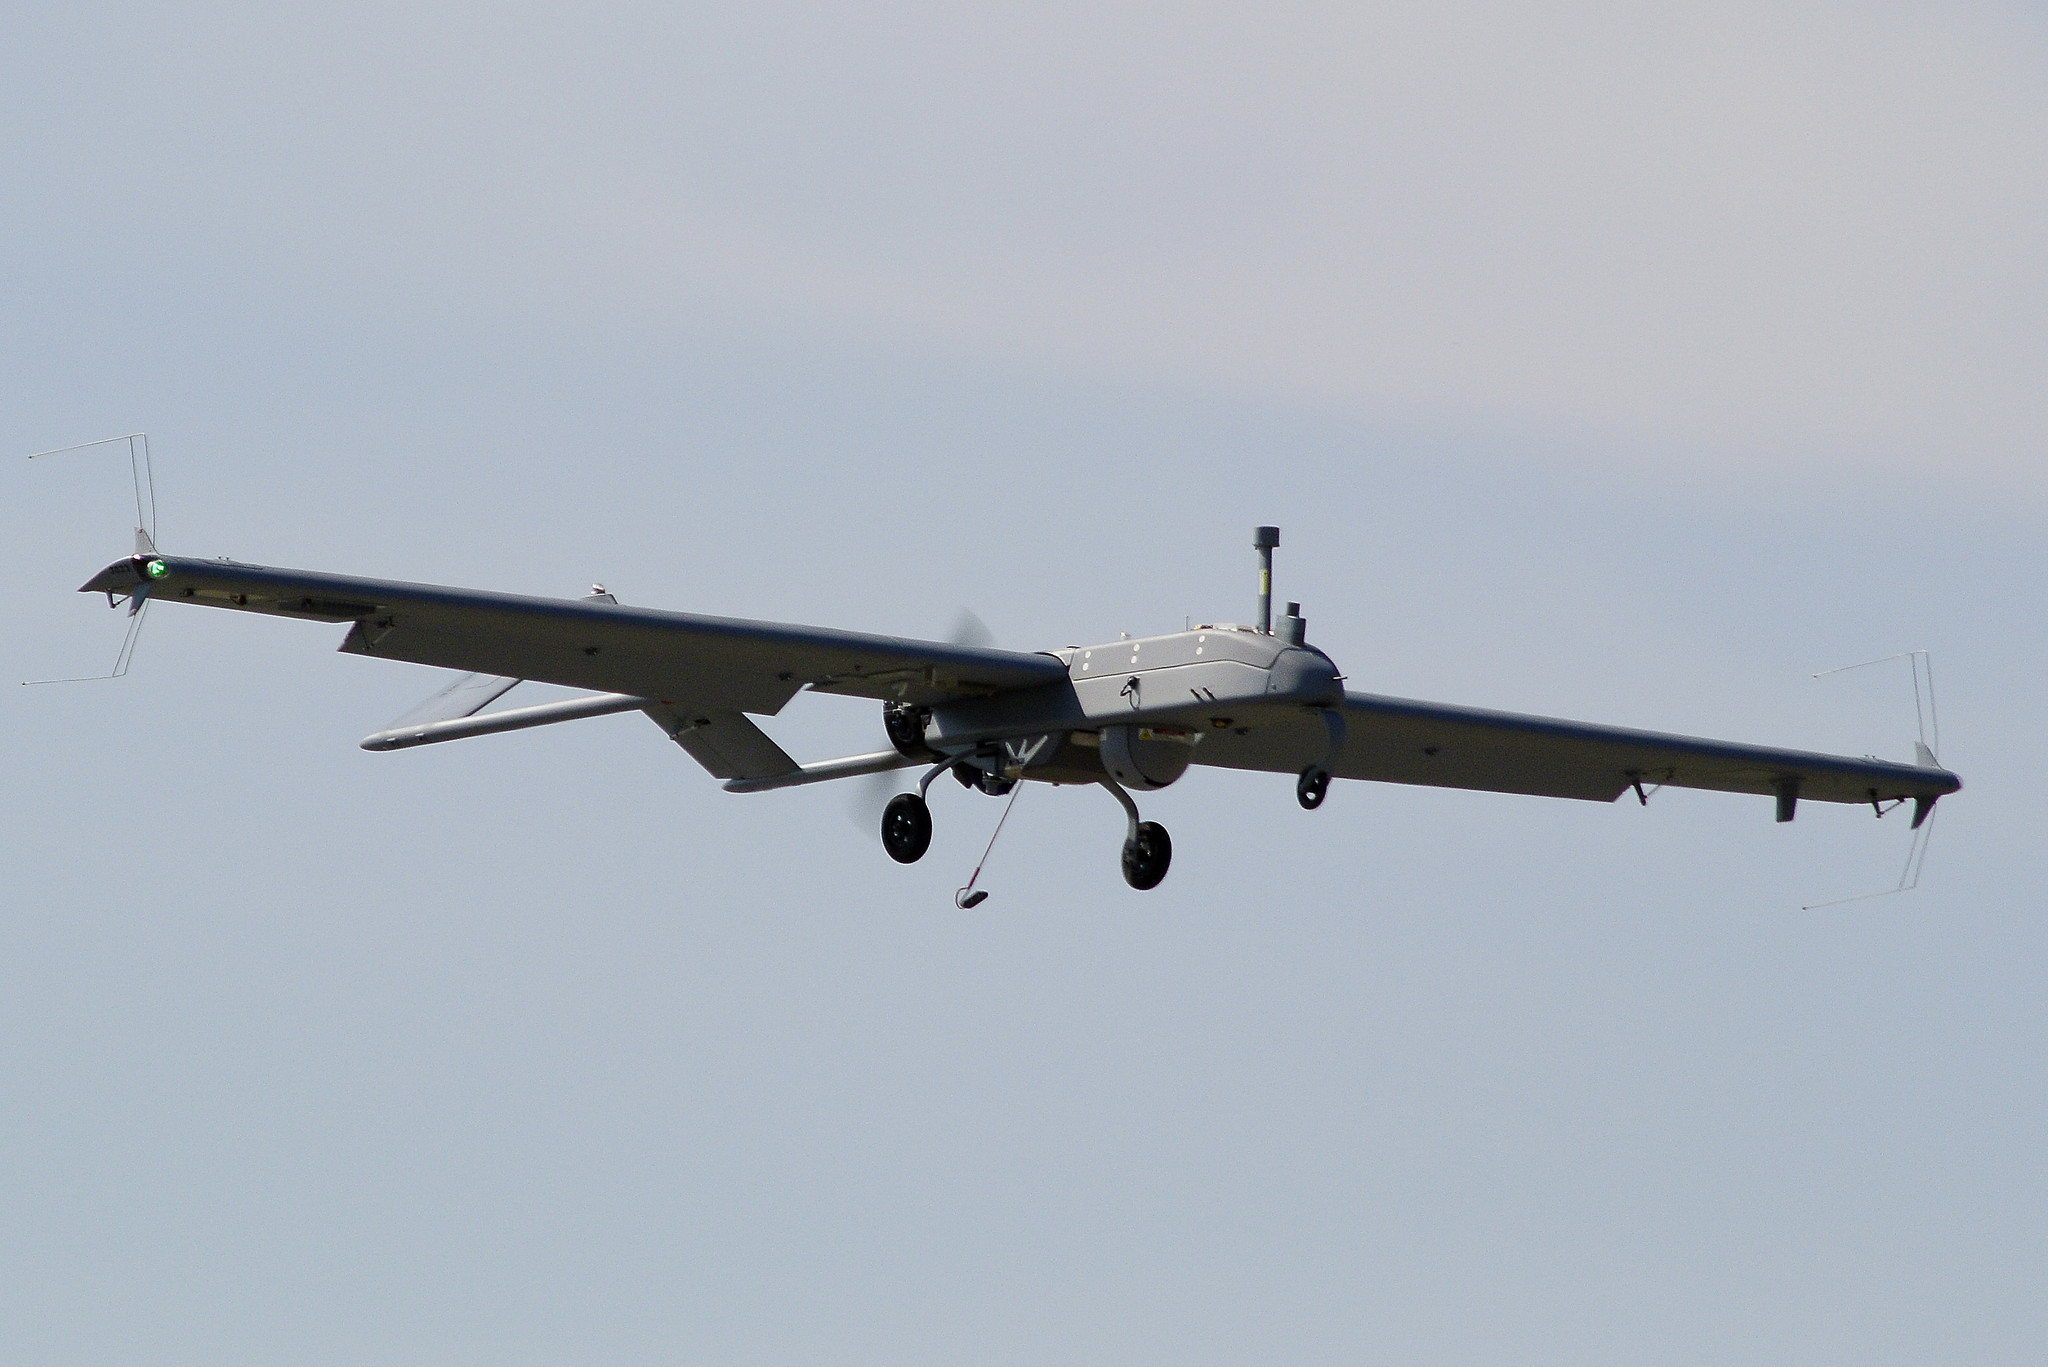 Textron Systems eyes commercial growth for drones it makes in Cockeysville